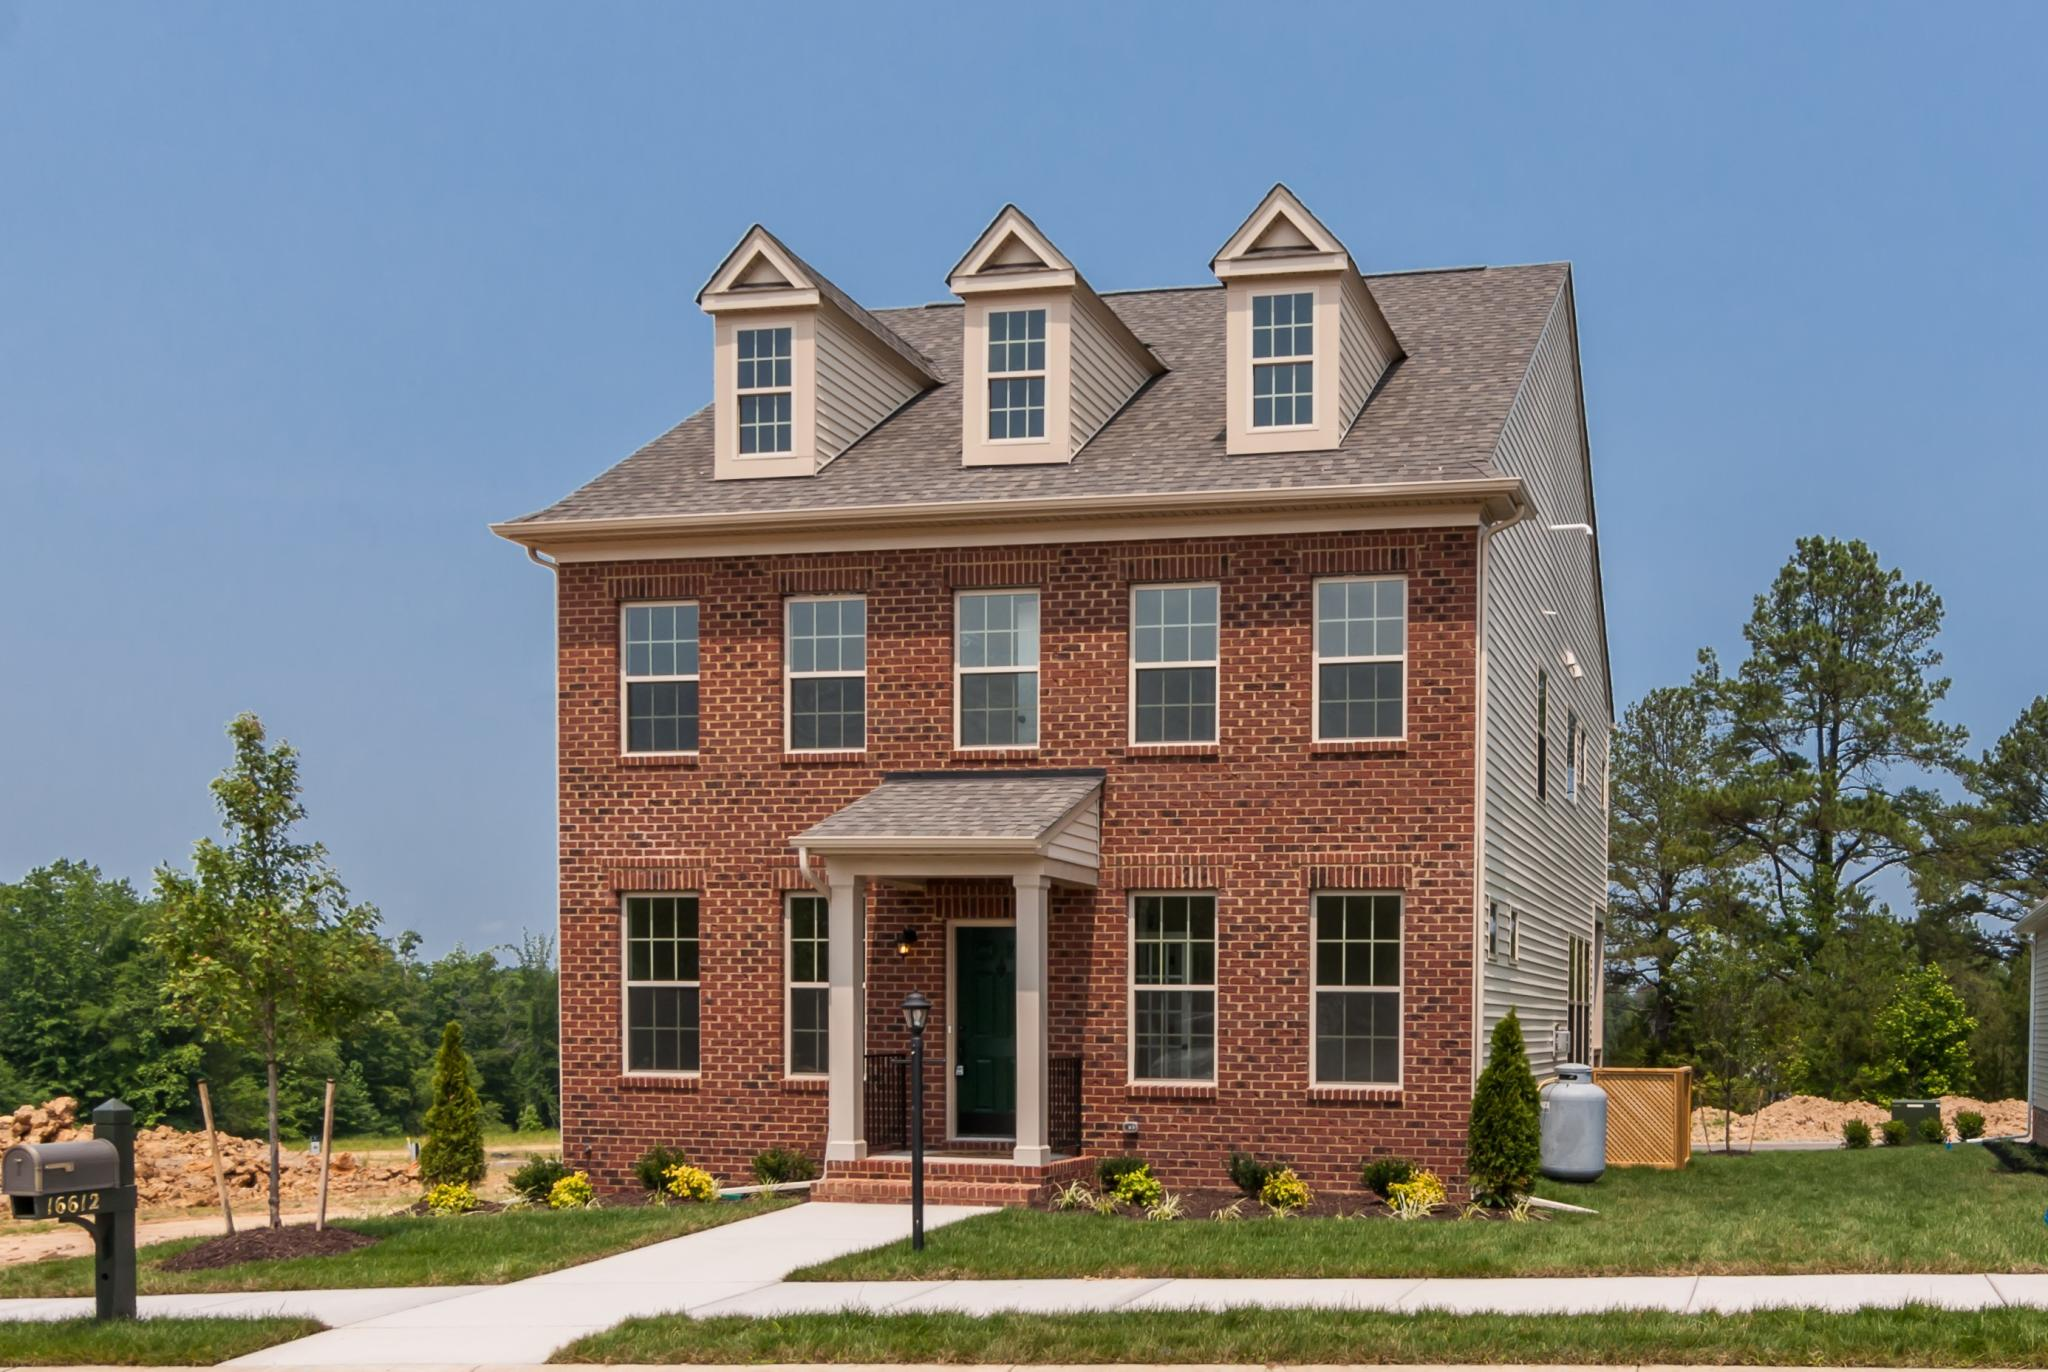 dshaw Plan at FoxCreek Vintage by HHHunt Homes Moseley, VA ... on